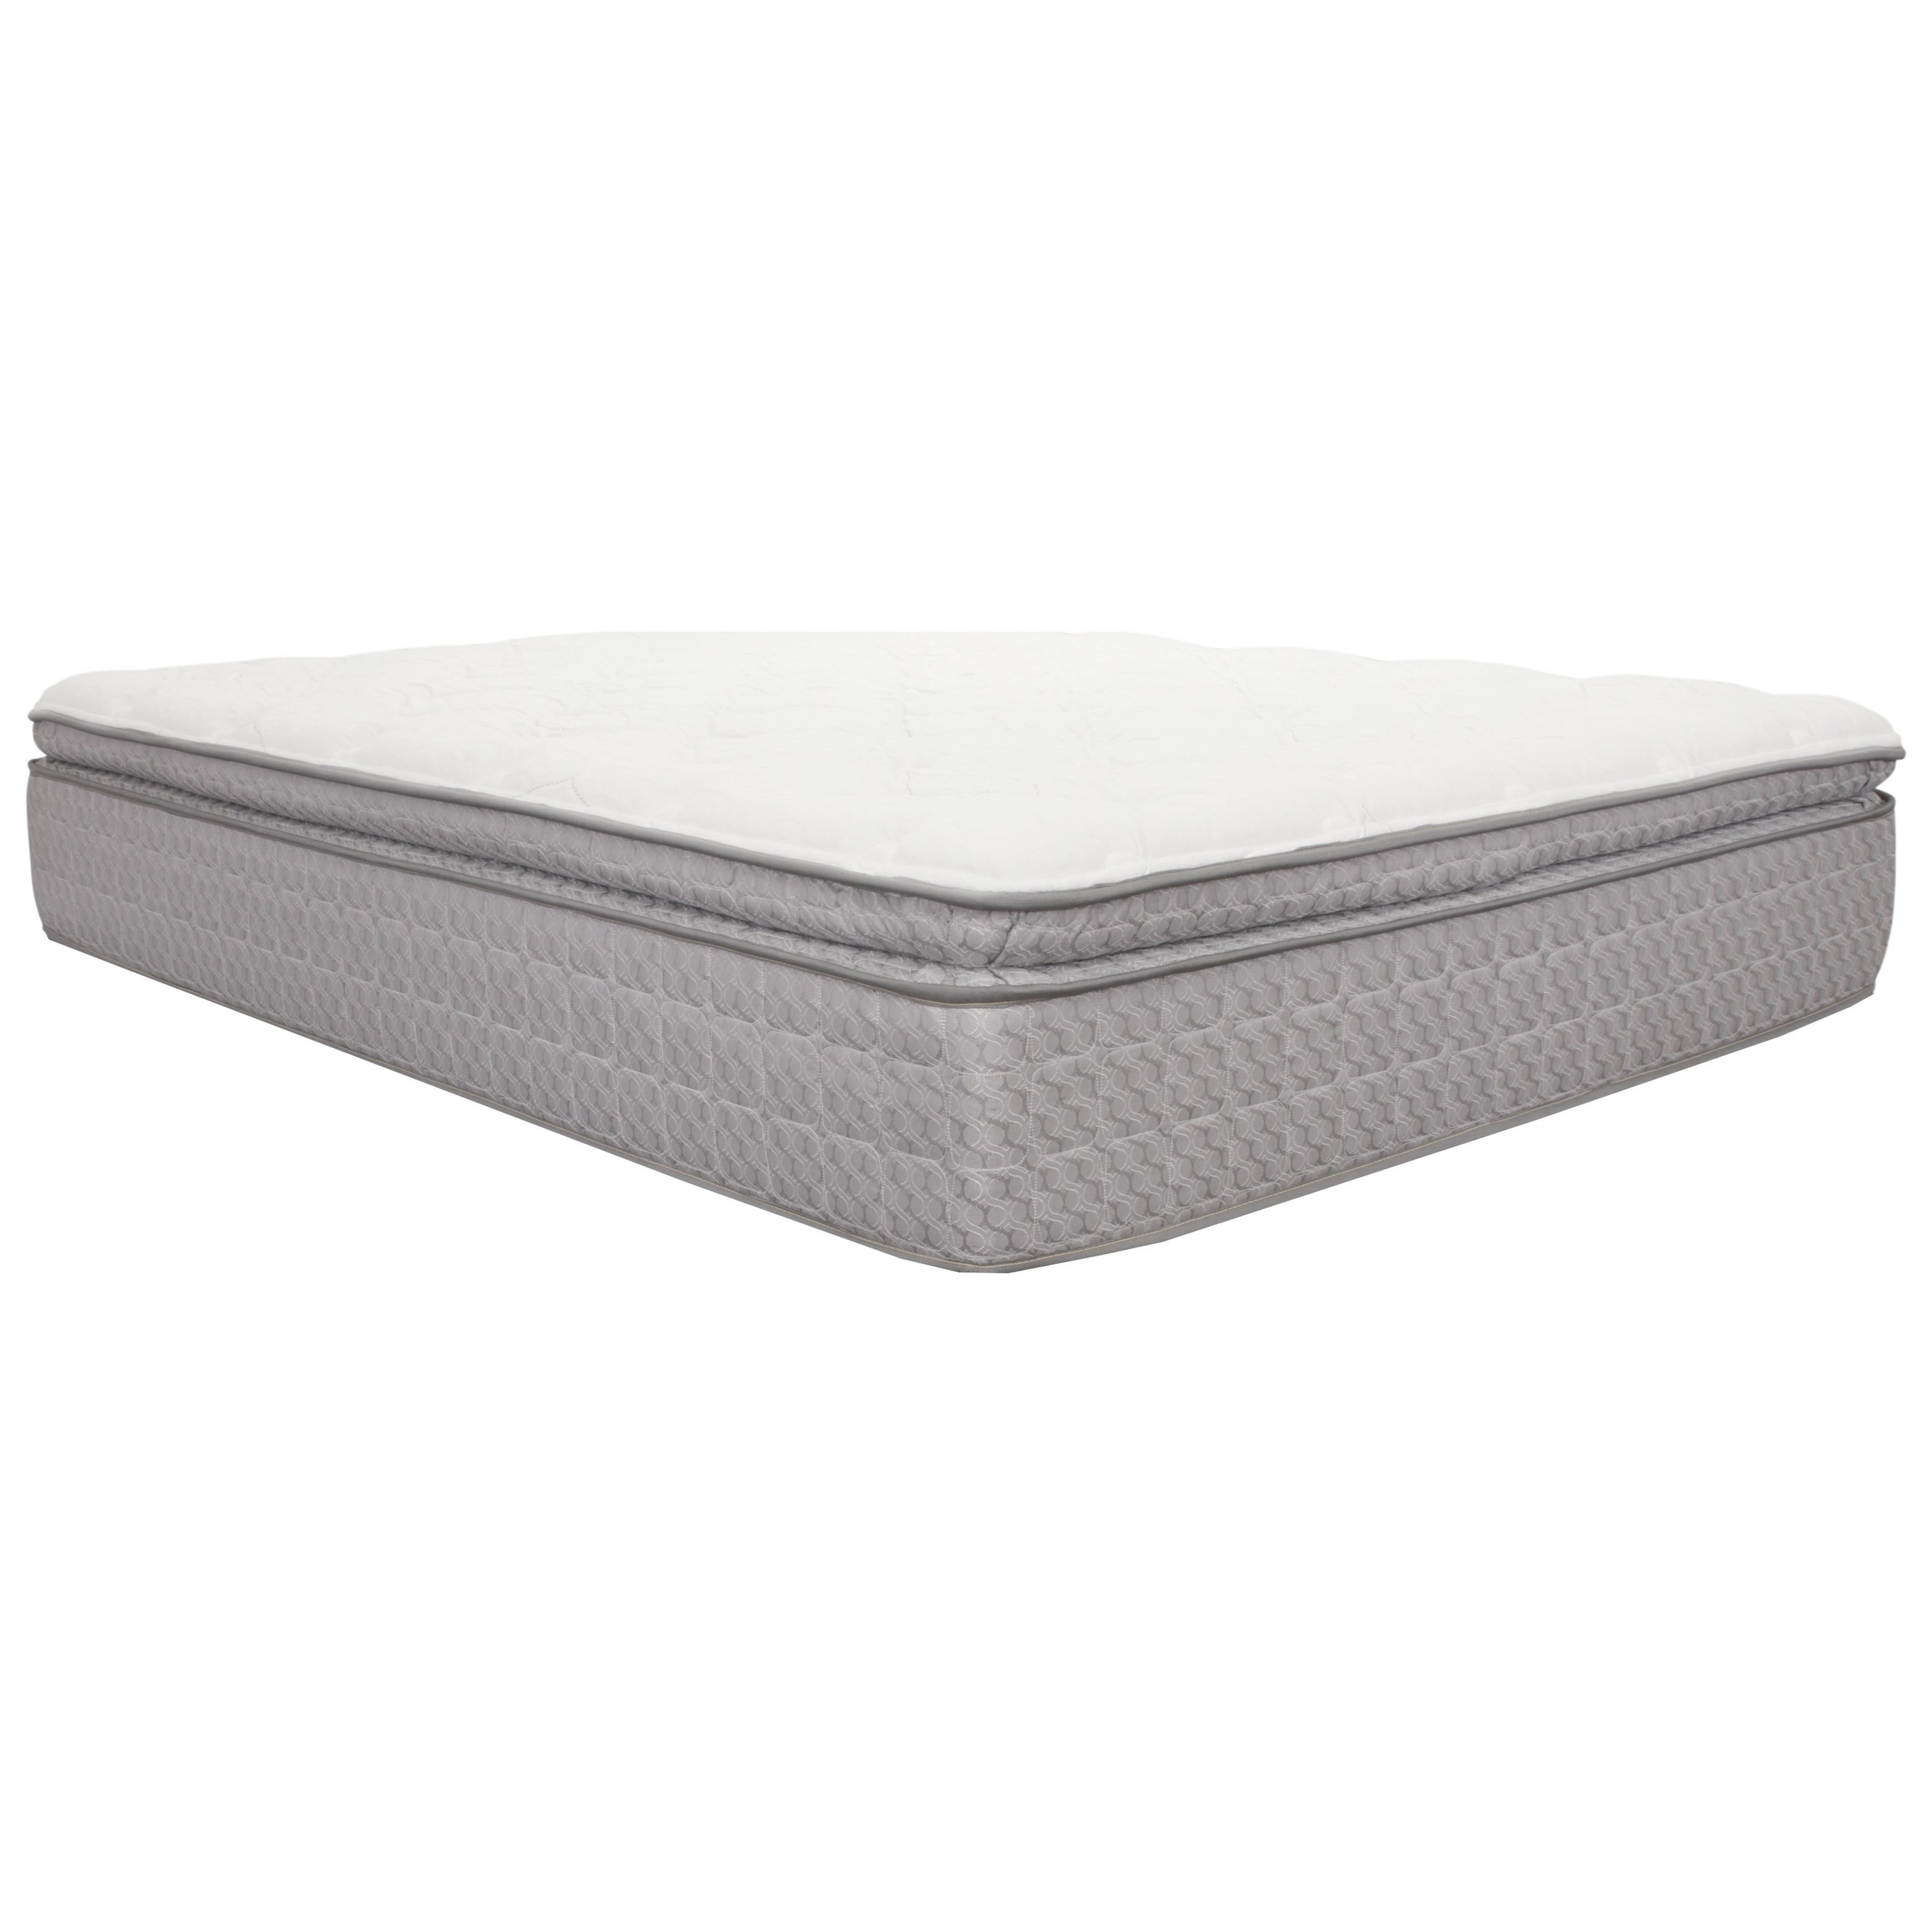 "Queen 15"" Pillow Top Mattress"